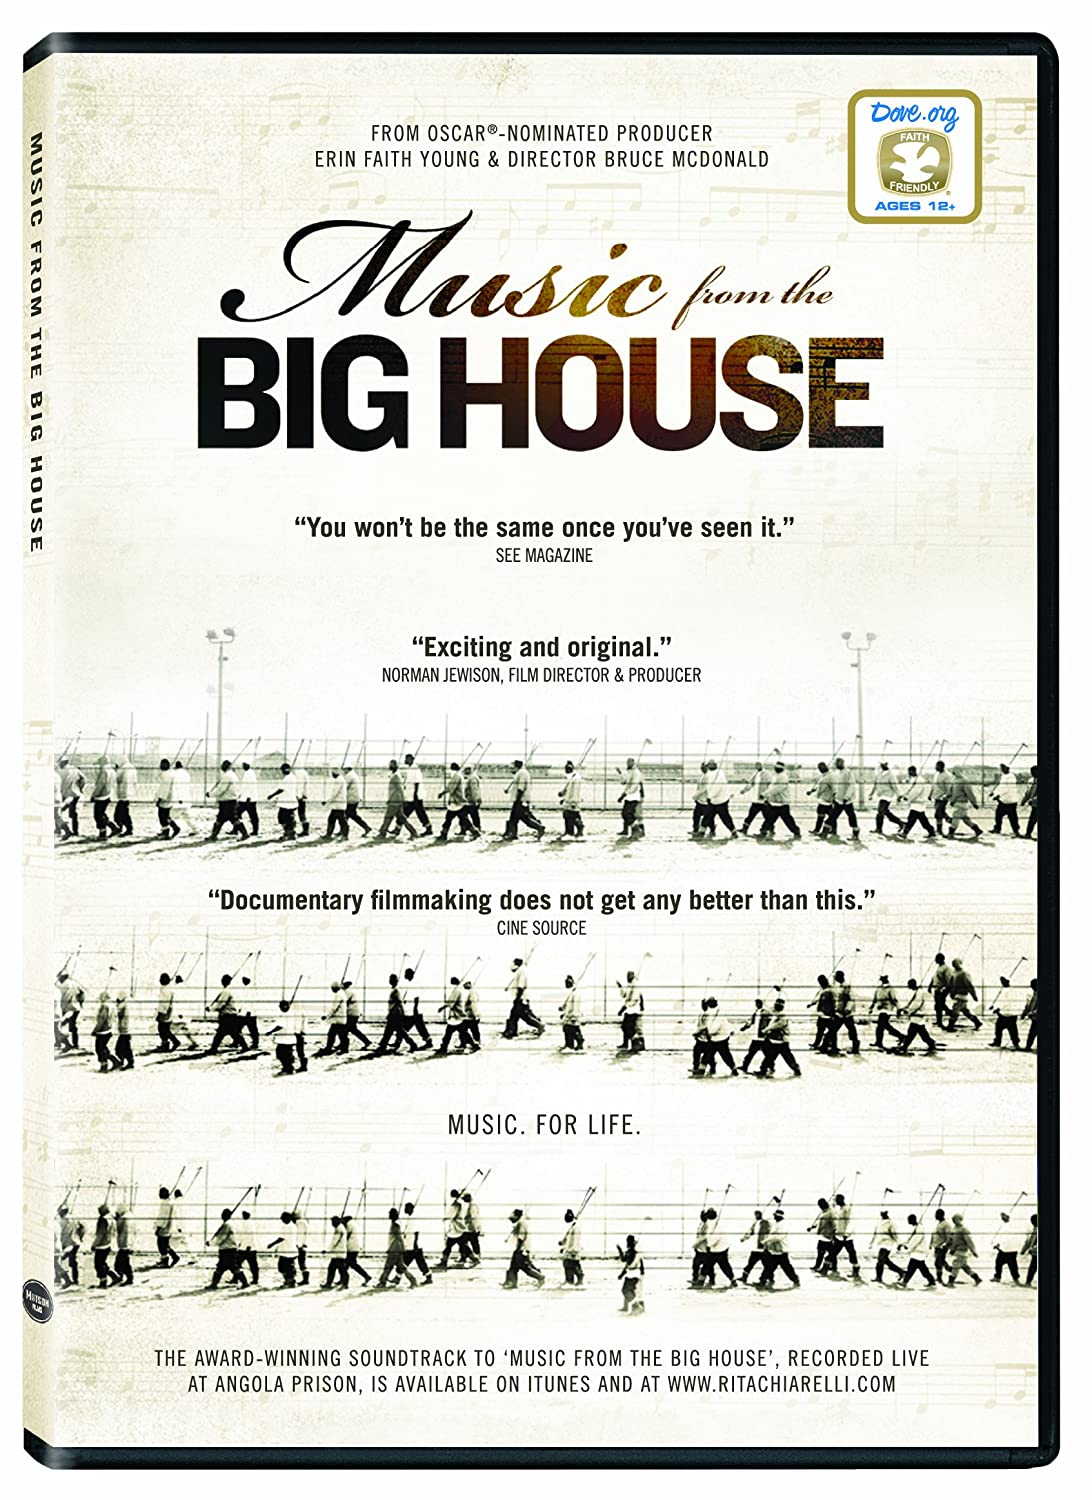 MUSIC FROM THE BIG HOUSE Koch Lorber Films Documentary Movie Mystery & Suspense